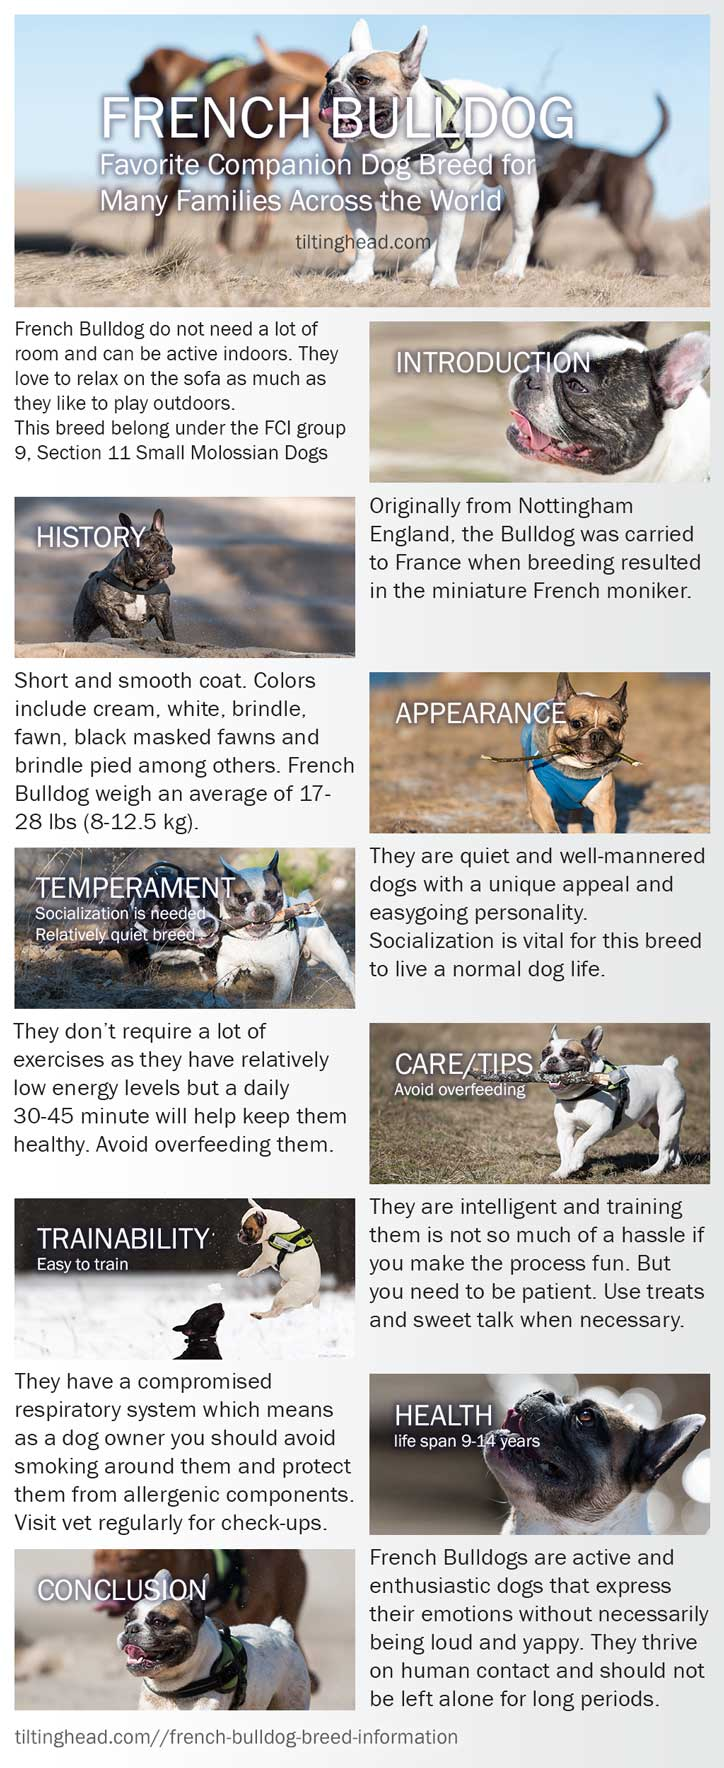 french bulldog breed Infographic